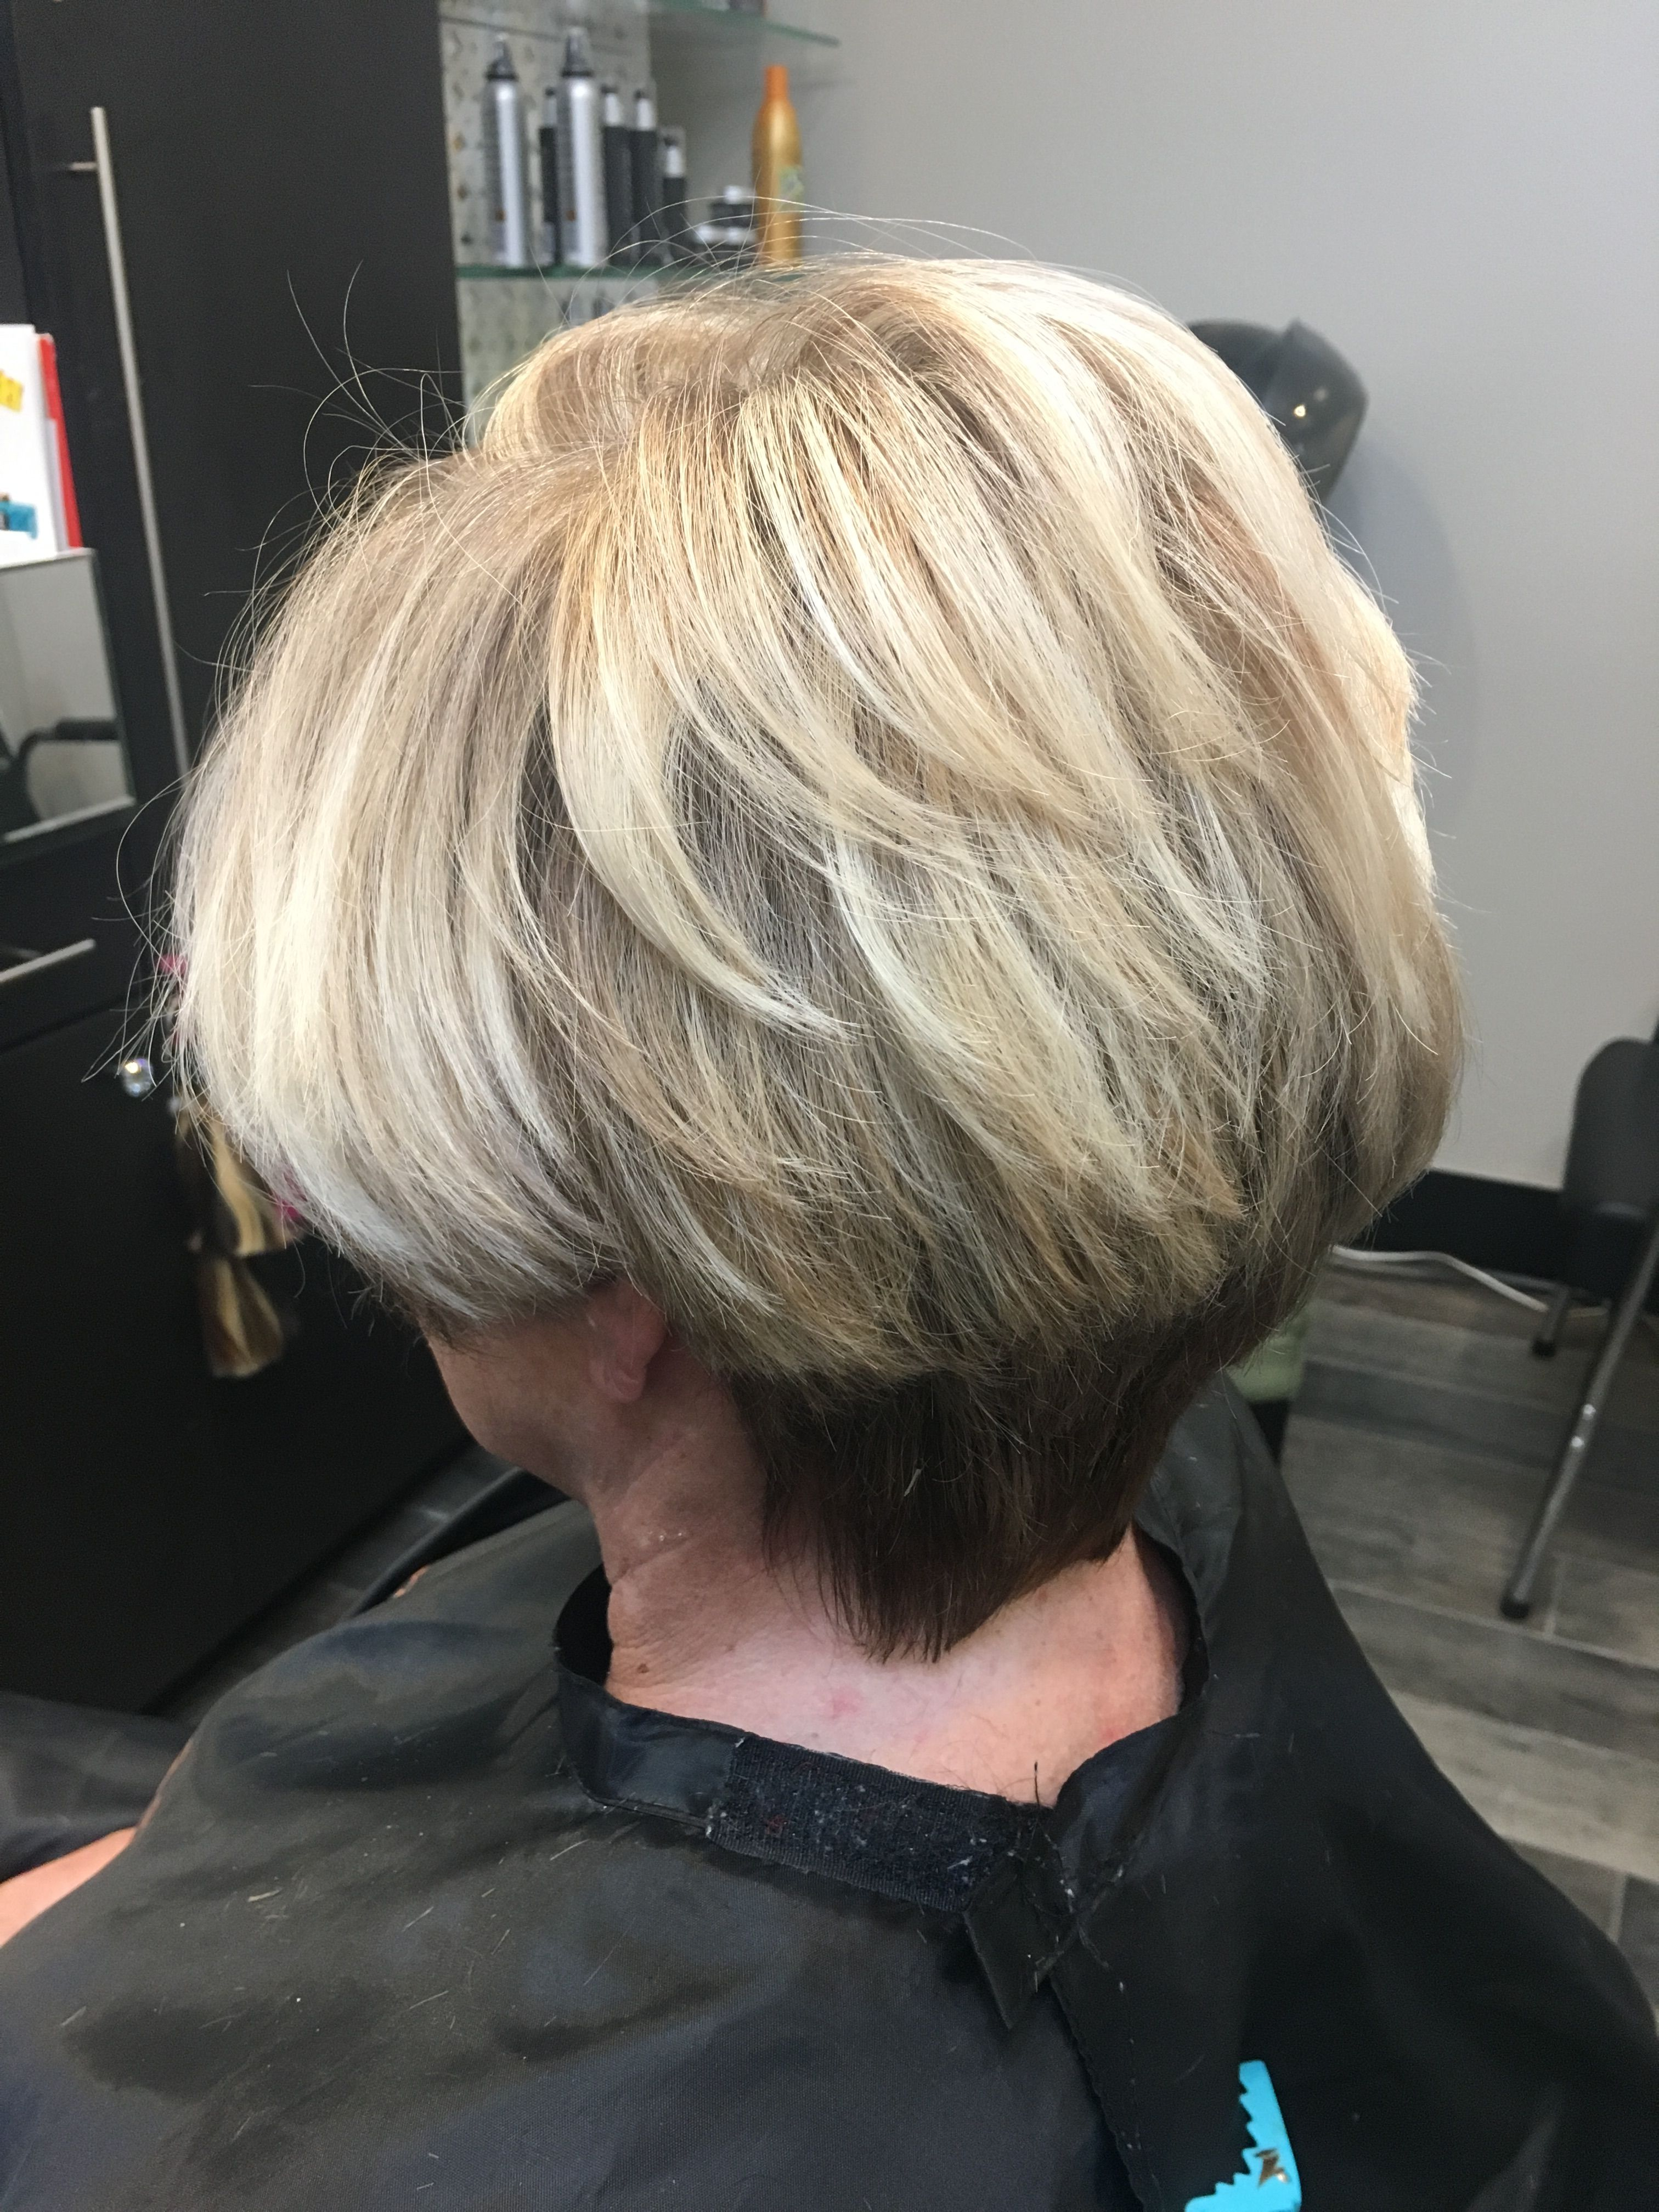 Short Haircut With Heavy Blonde Highlights And Contrast